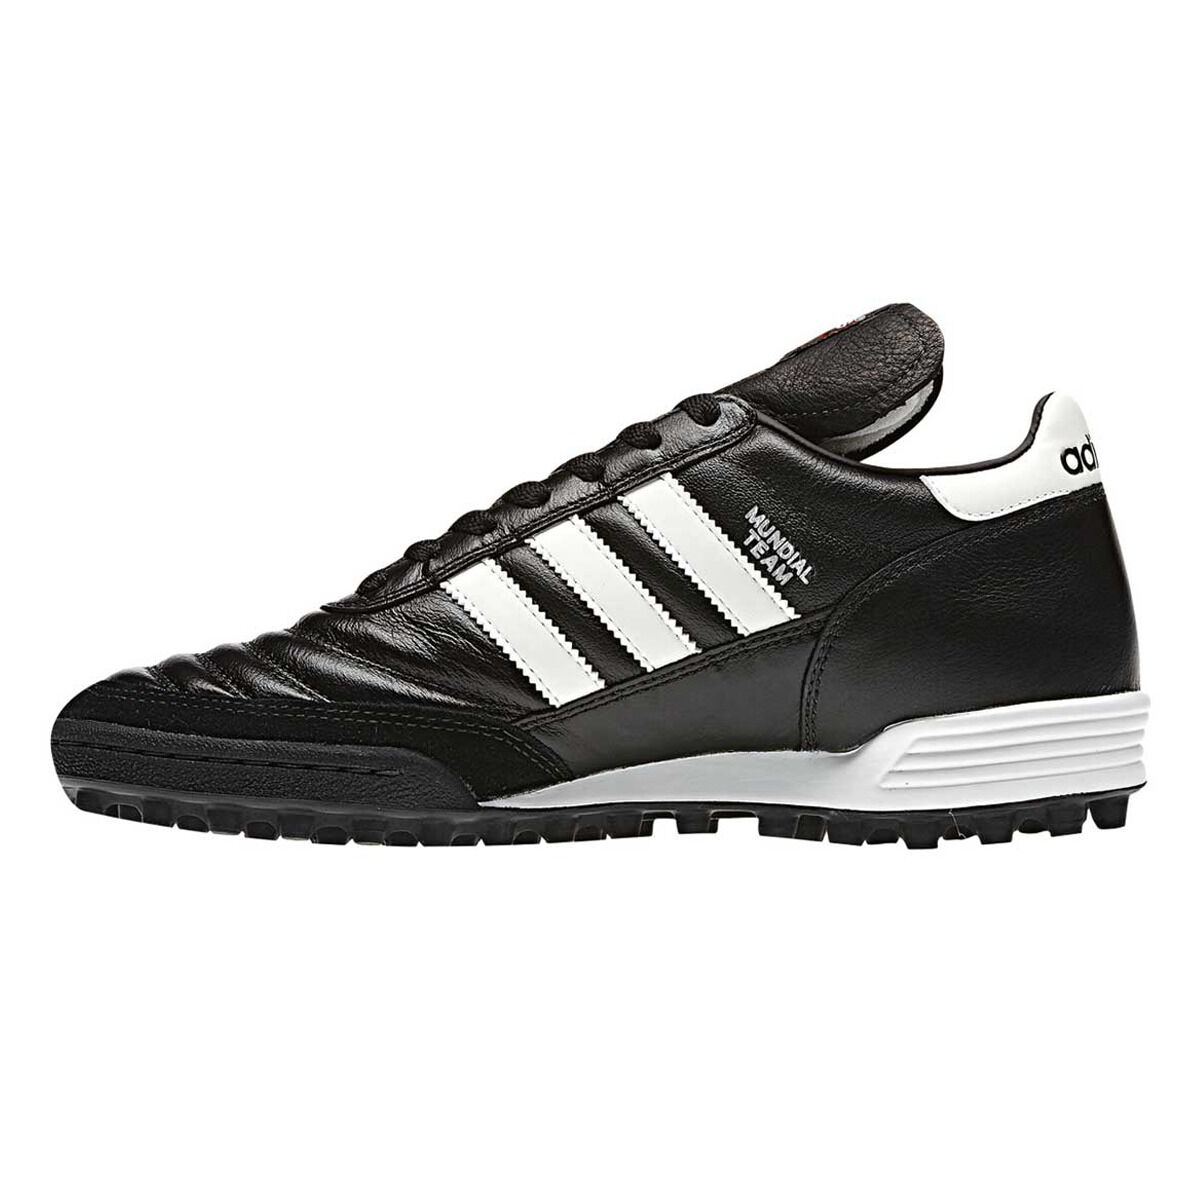 ADIDAS GOODYEAR : Buy 100% authentic Adidas Sneakers Online